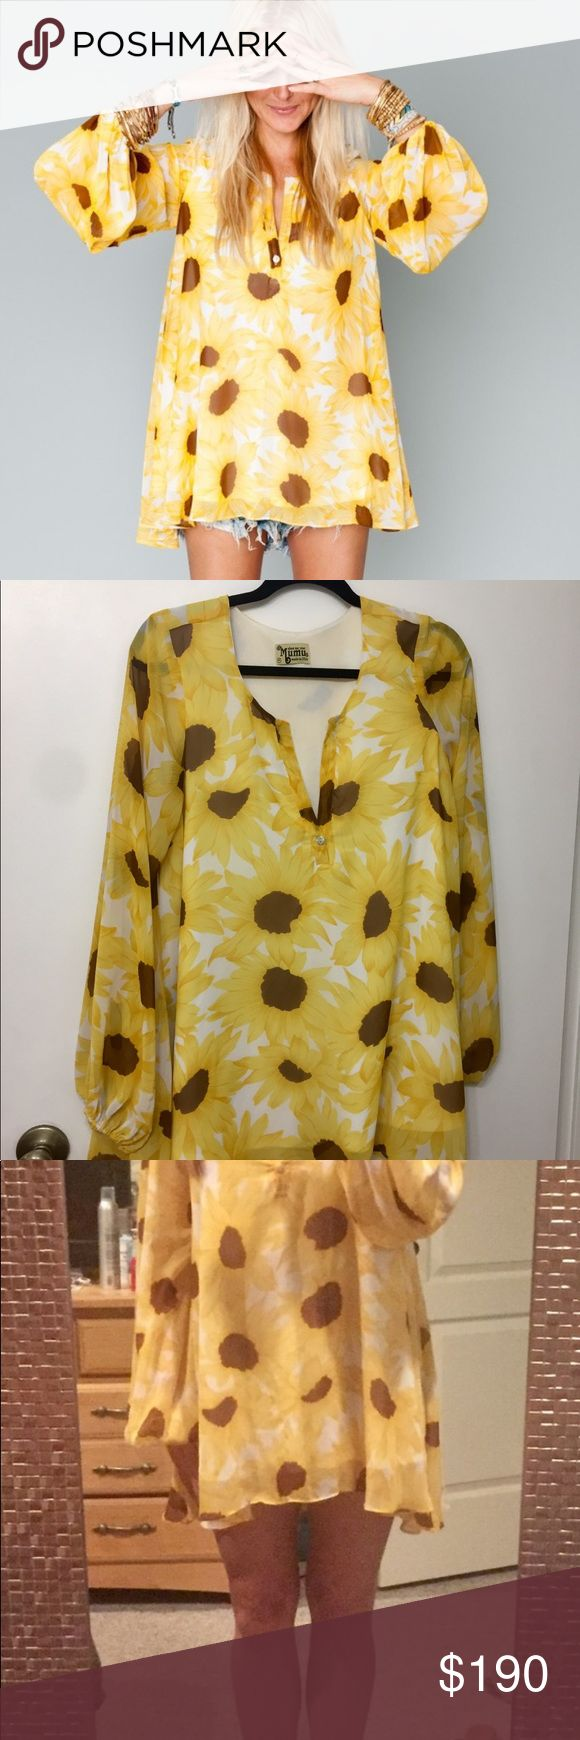 Sunflower Club Jamie Tunic 🌻 Size Medium - selling because I have too much in this print! 🌻 EUC no snags, runs, etc. 🌻 Lined 🌻 Can be worn as a top or dress - I am 5'4 and wore as a dress 🌻 Will consider trading for the following prints only: Mint Poppi (Romper), Mai Tai, Flowers in the Sky, Poppy Petal (cape or tunic), Woodstock Dip Dye USA (Tunic only), Lei Bay (Rascal Romper, Circus Mini or Hacienda Maxi), Bikini Barbie. Show Me Your MuMu Dresses